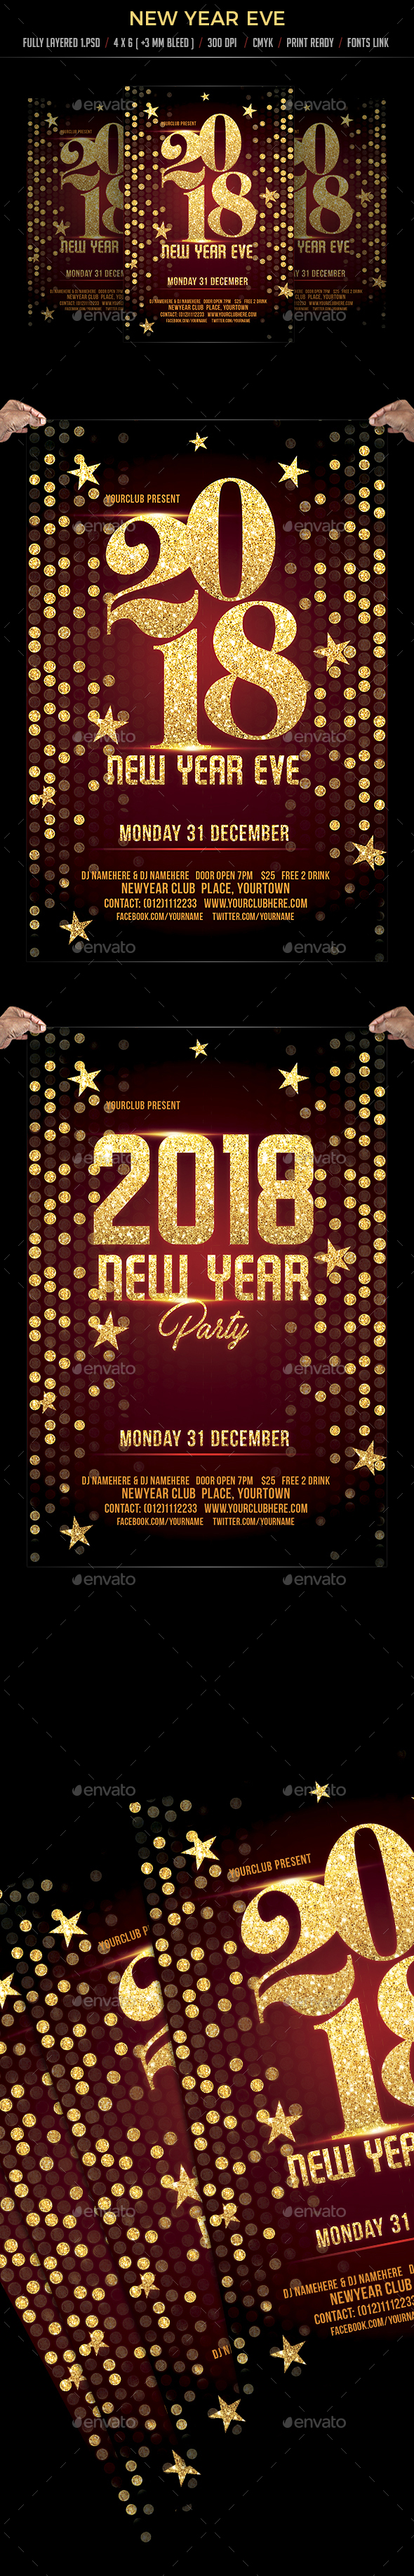 GraphicRiver New Year Eve Flyer Template 21031482